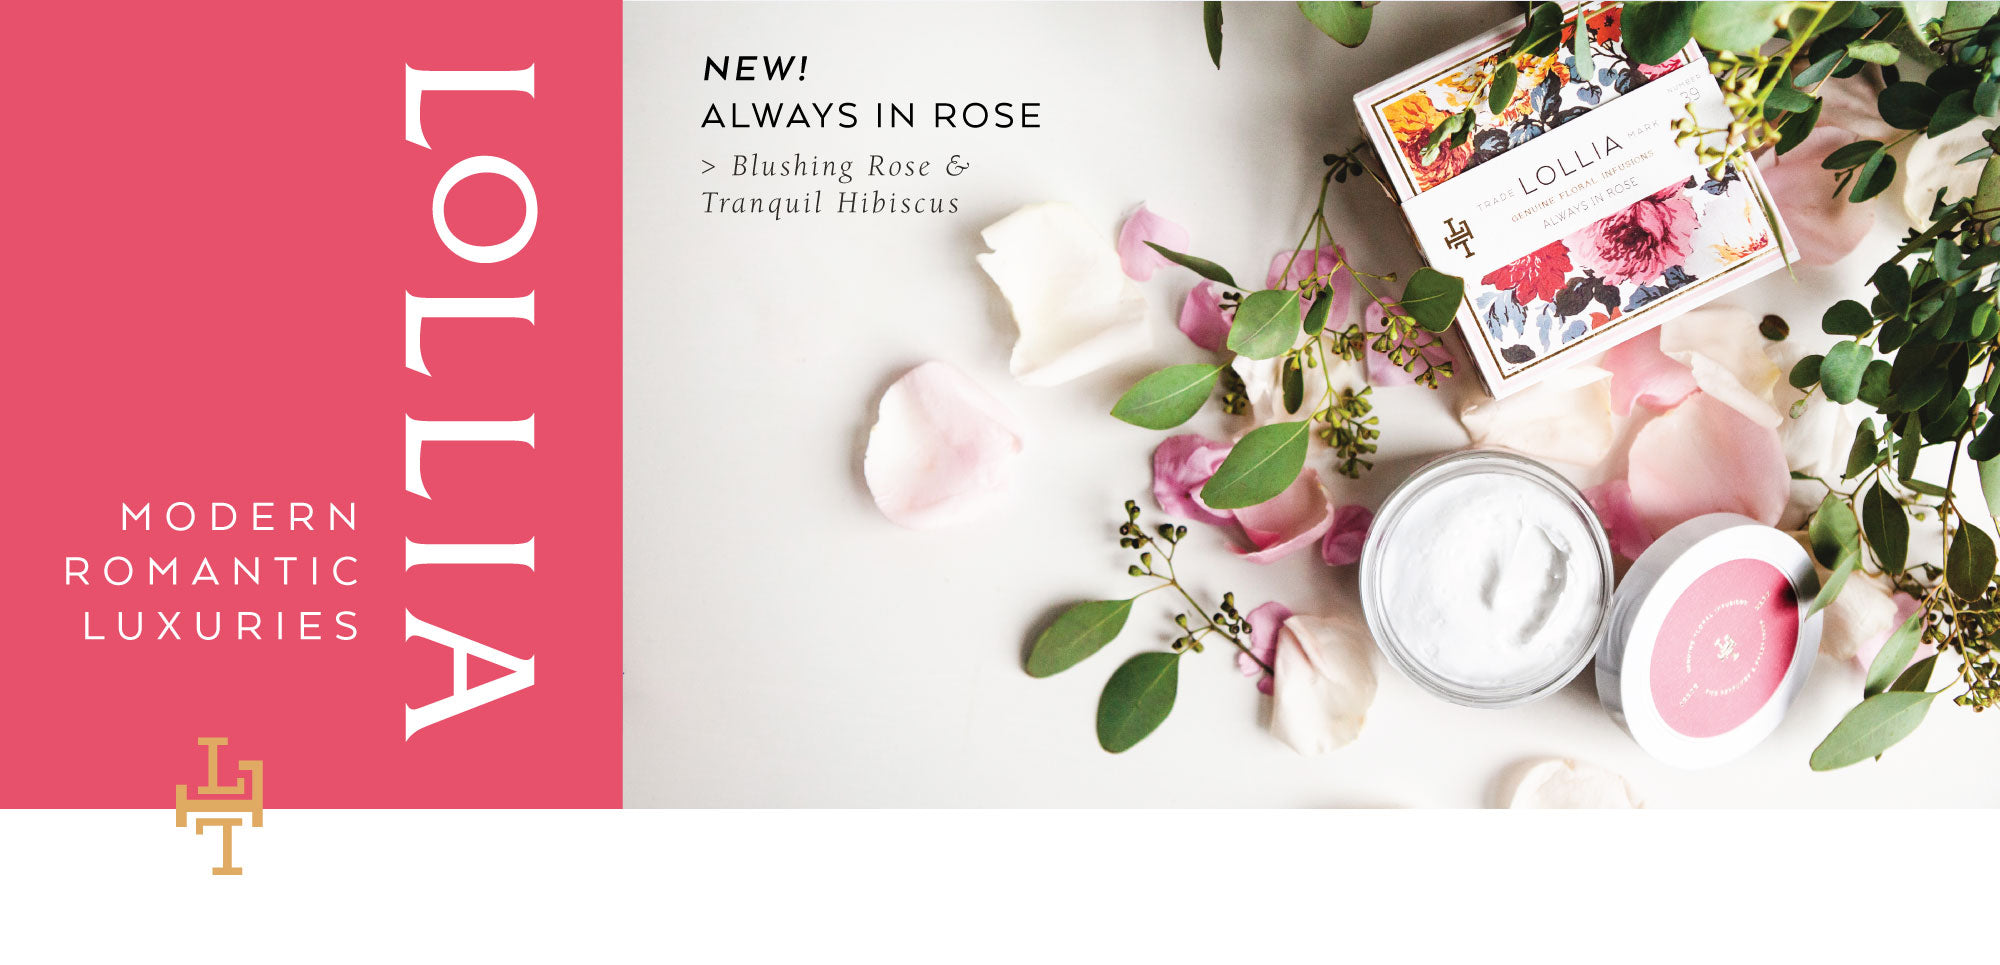 NEW! Always in Rose by Lollia